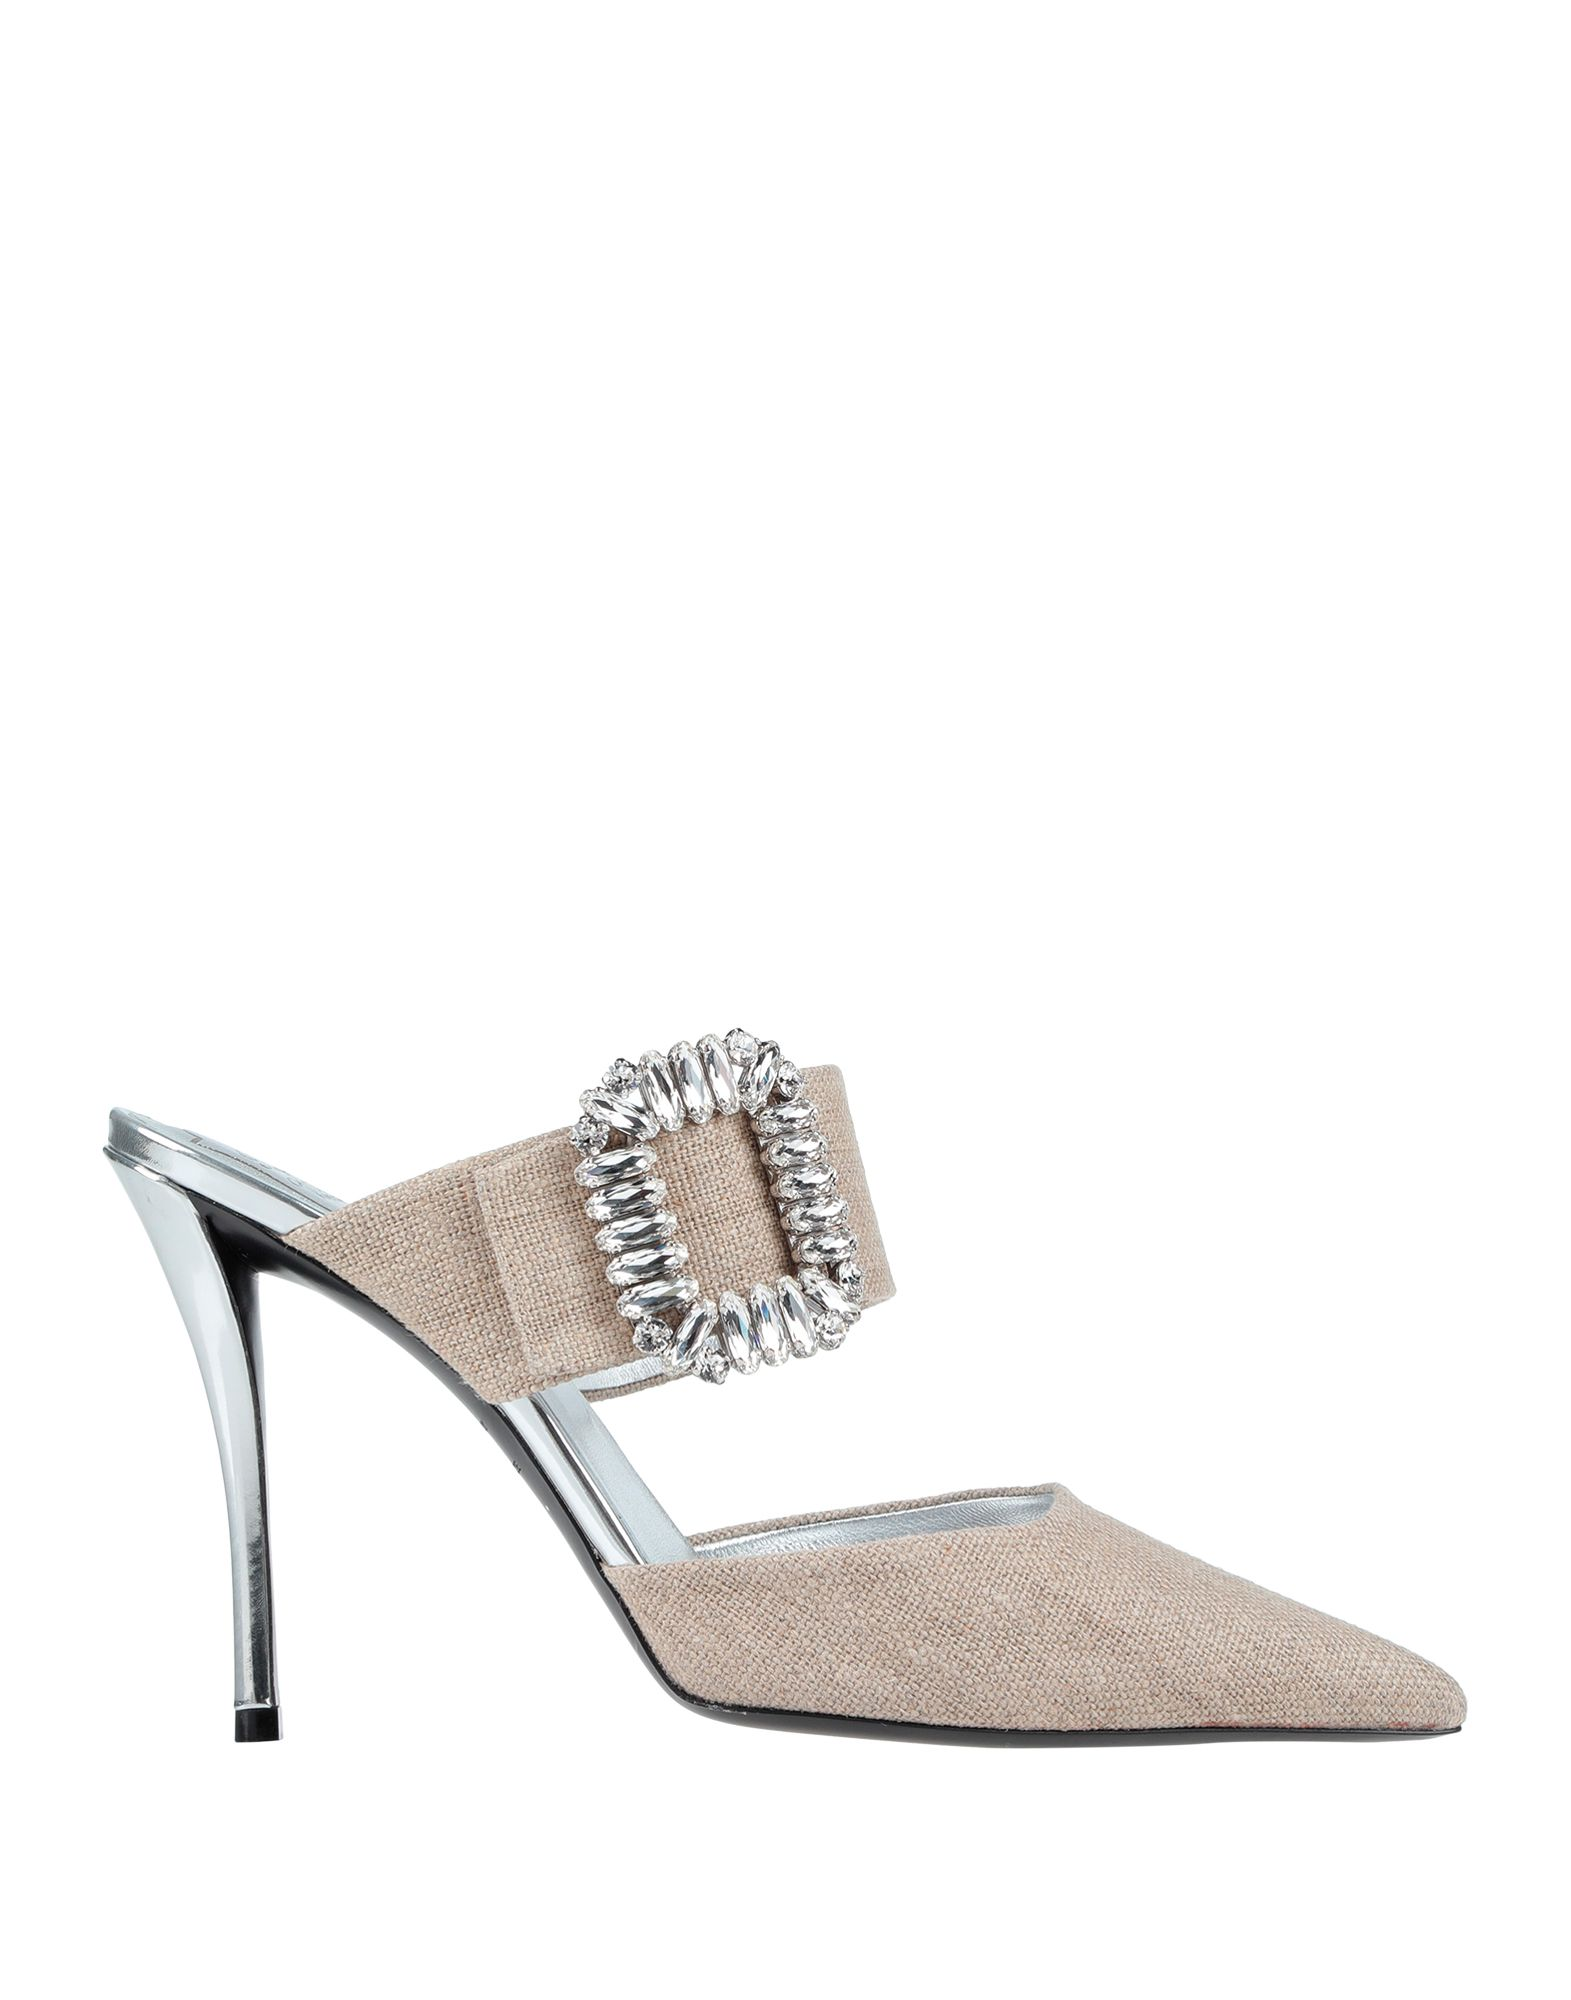 ROGER VIVIER Mules. canvas, rhinestones, solid color, narrow toeline, spike heel, leather lining, leather sole, contains non-textile parts of animal origin. Textile fibers